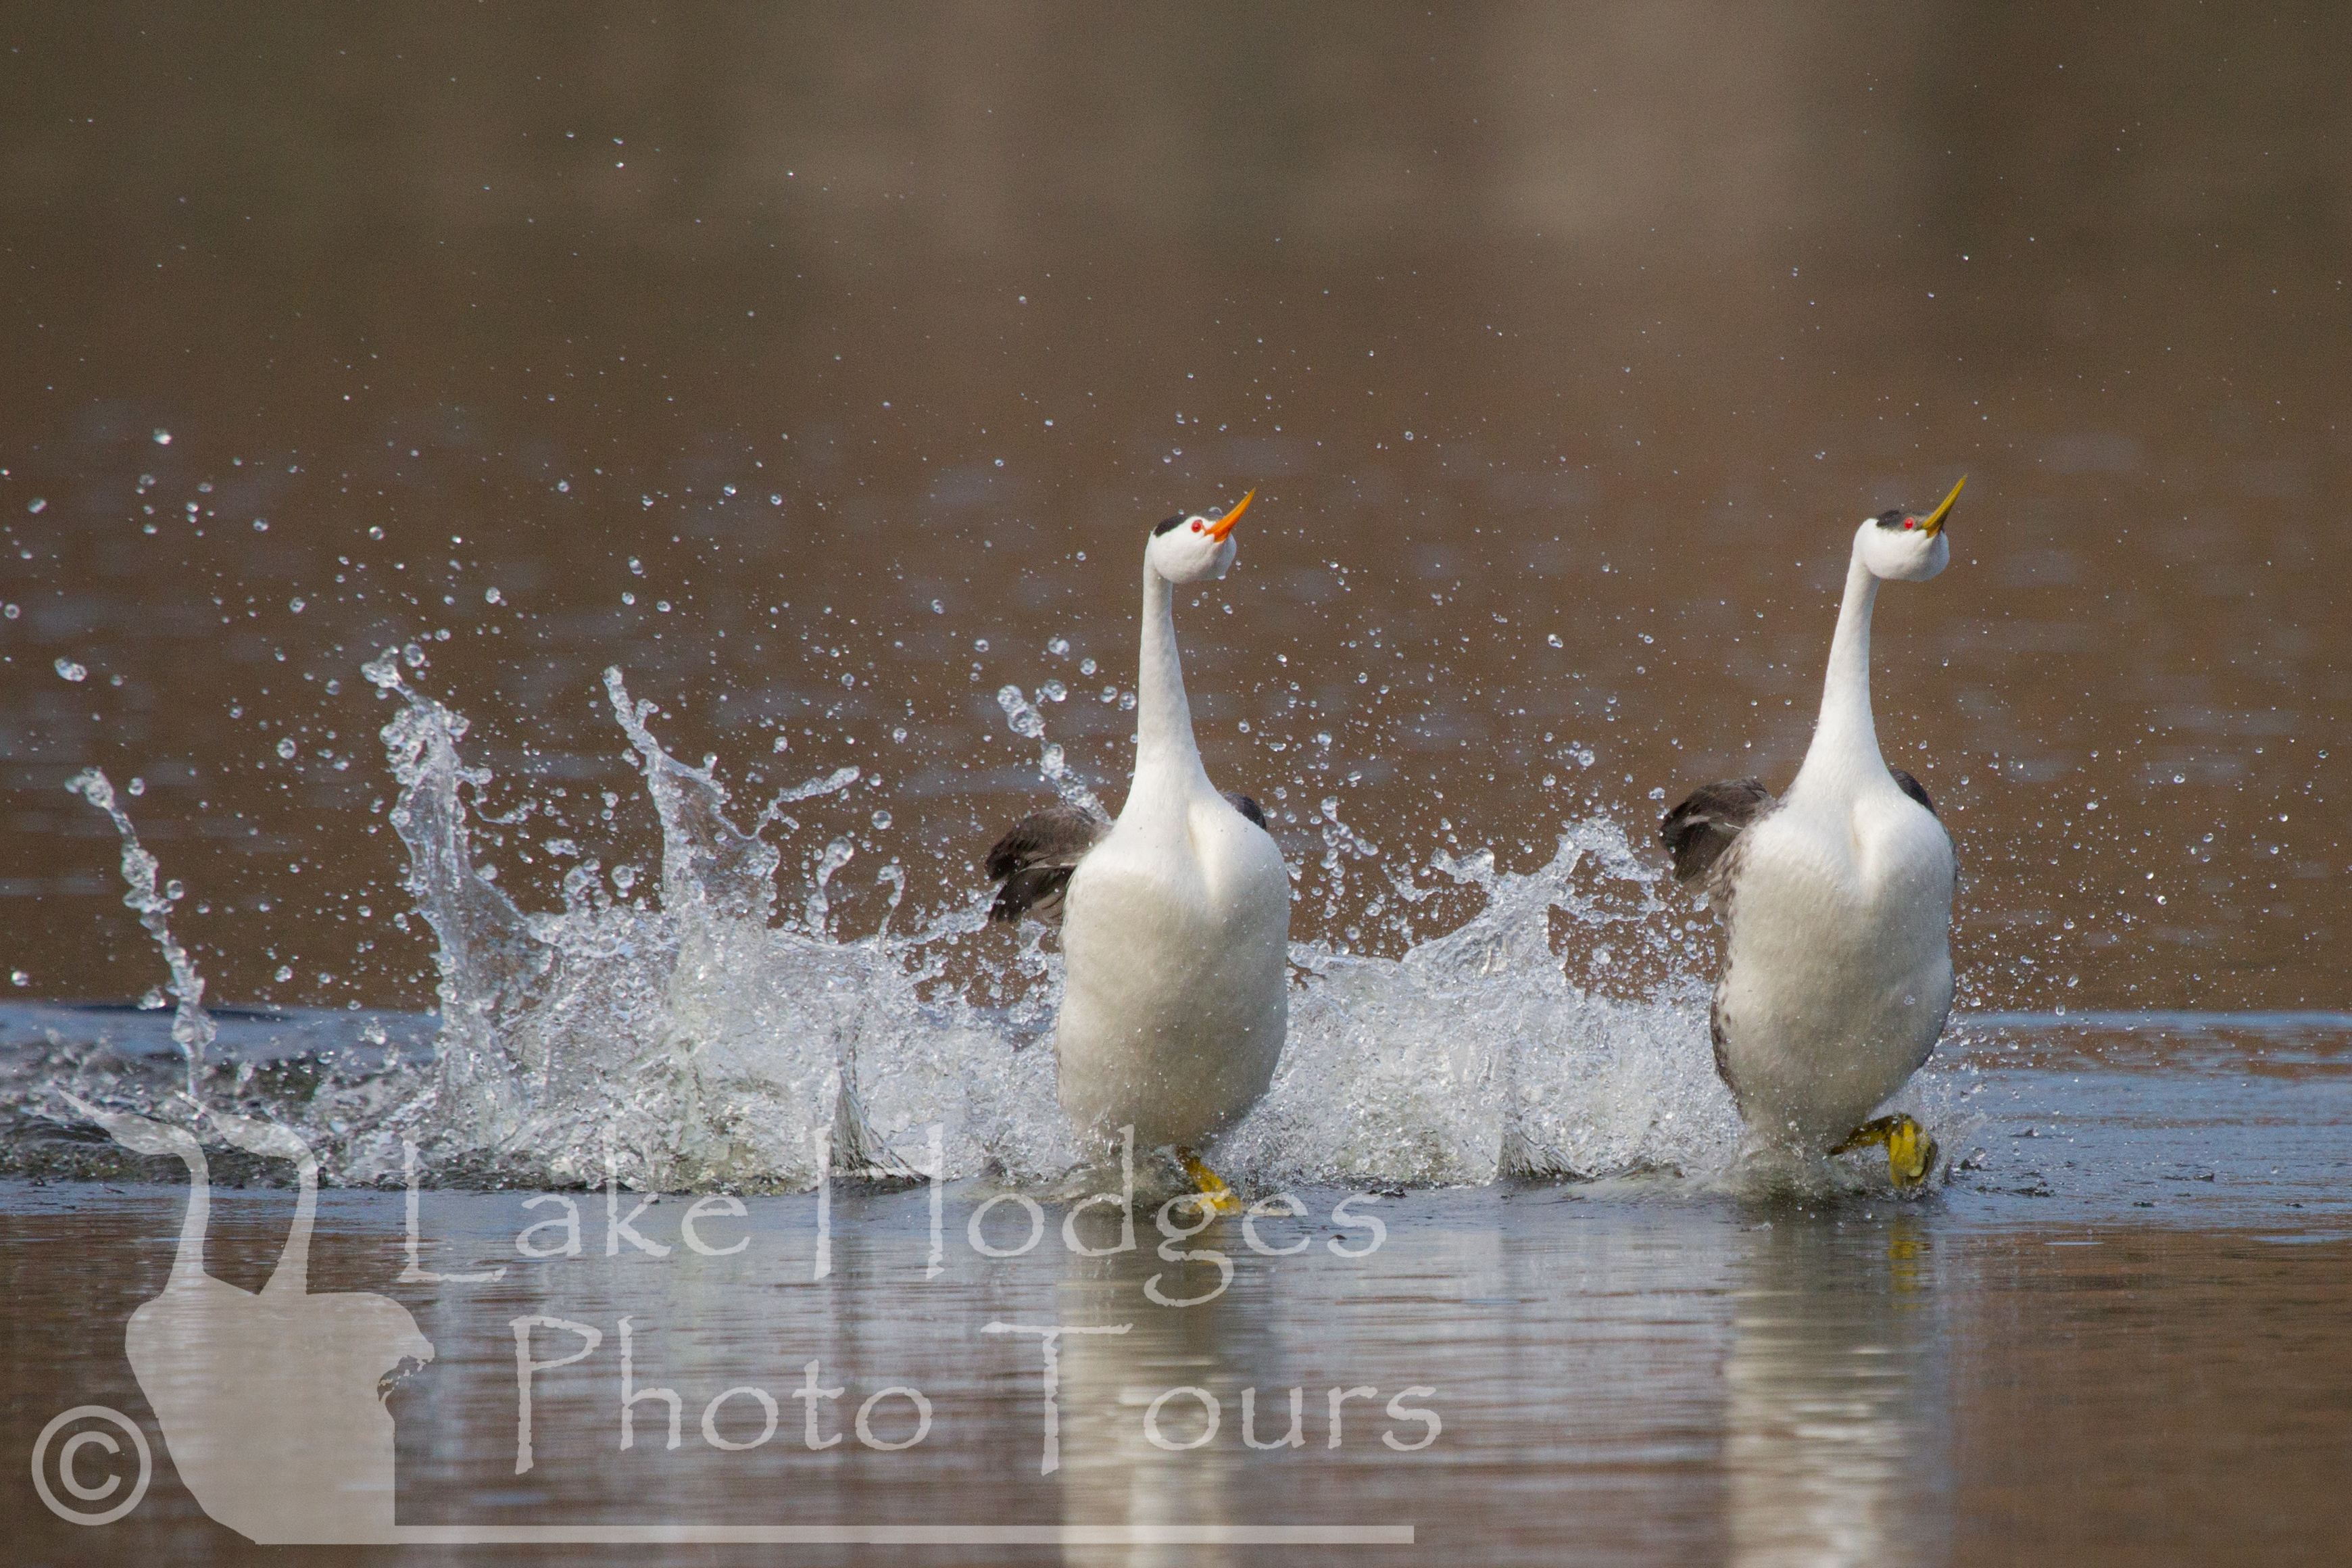 Clark's AND Western Grebes rushing together at Lake Hodges Photo Tours